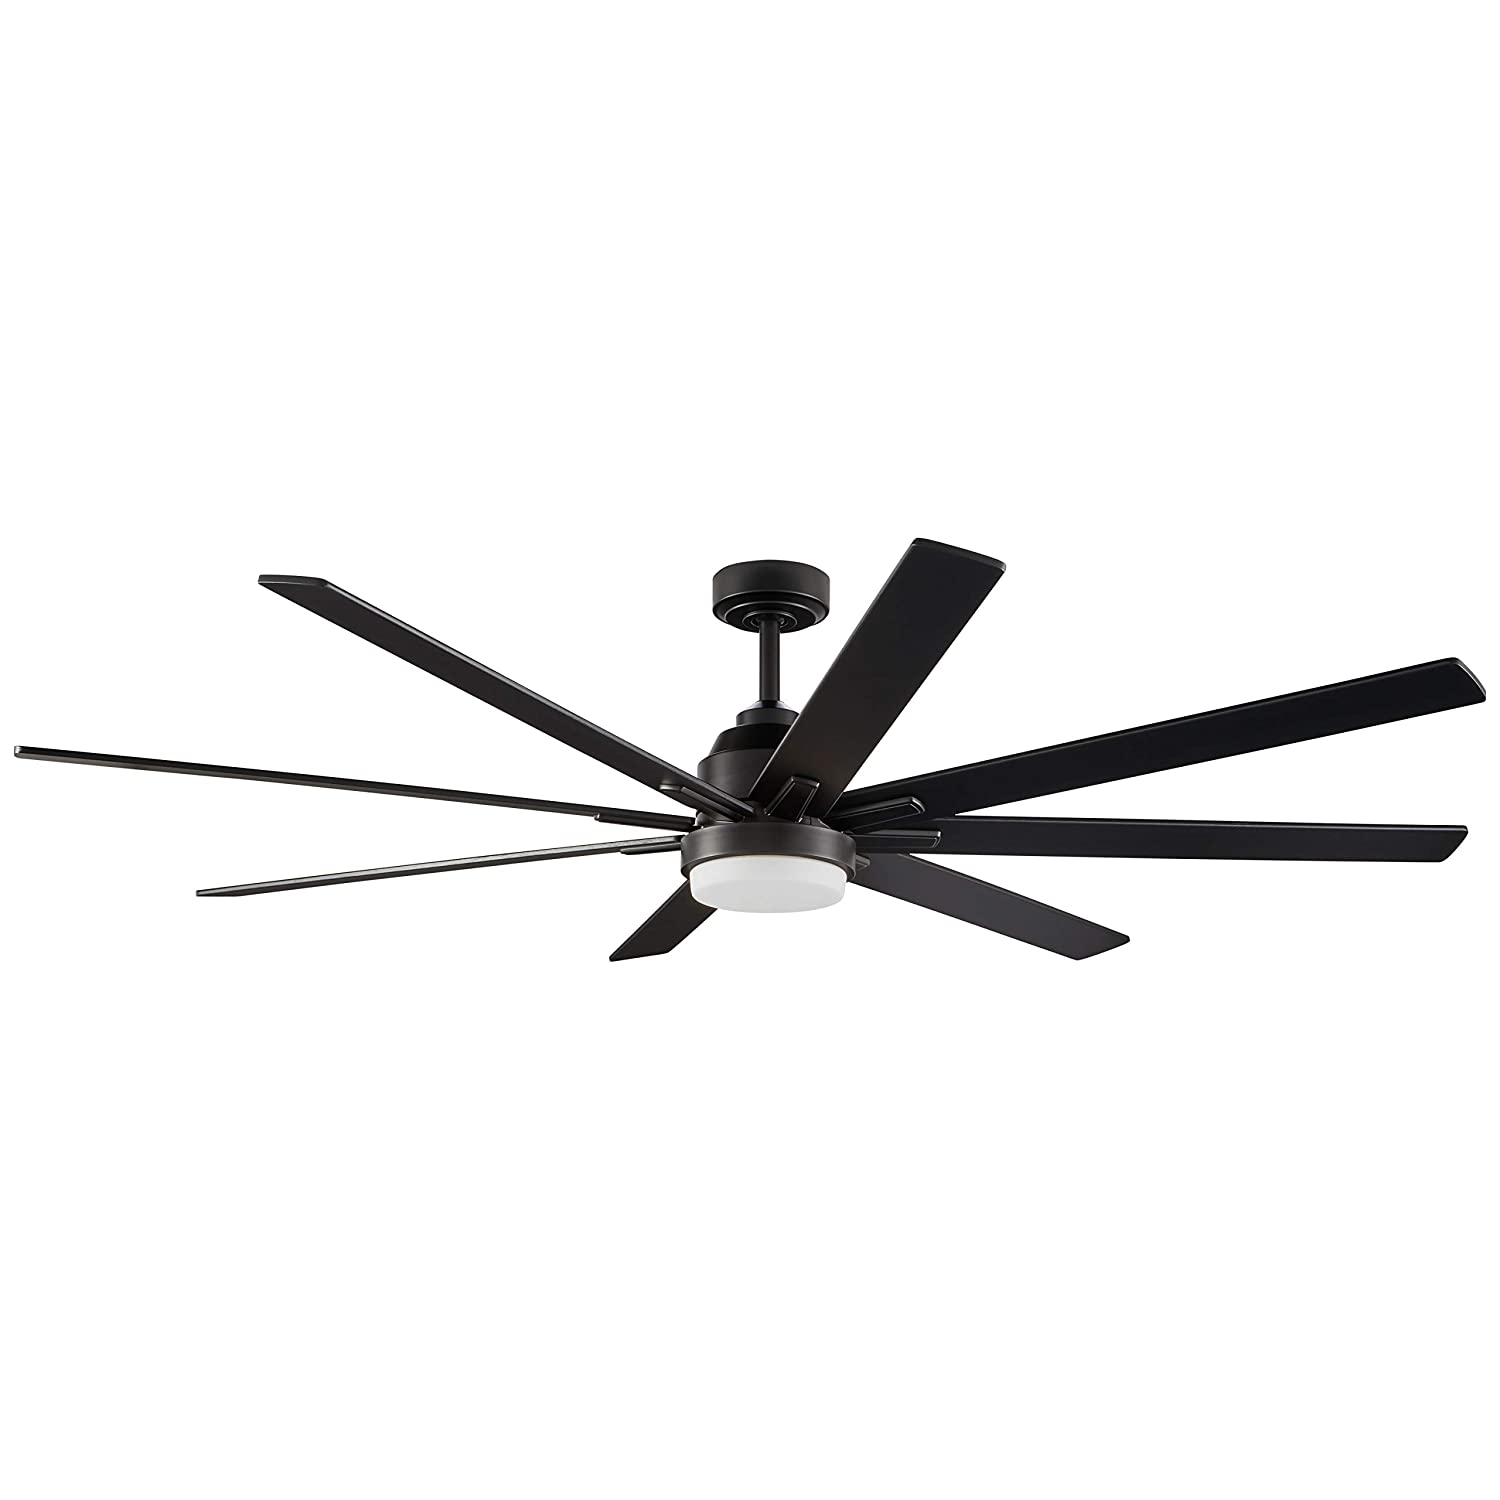 Rivet Modern Remote Control DC Motor Ceiling Fan with 18W Integrated LED Light. 72 W x 10 H, Black